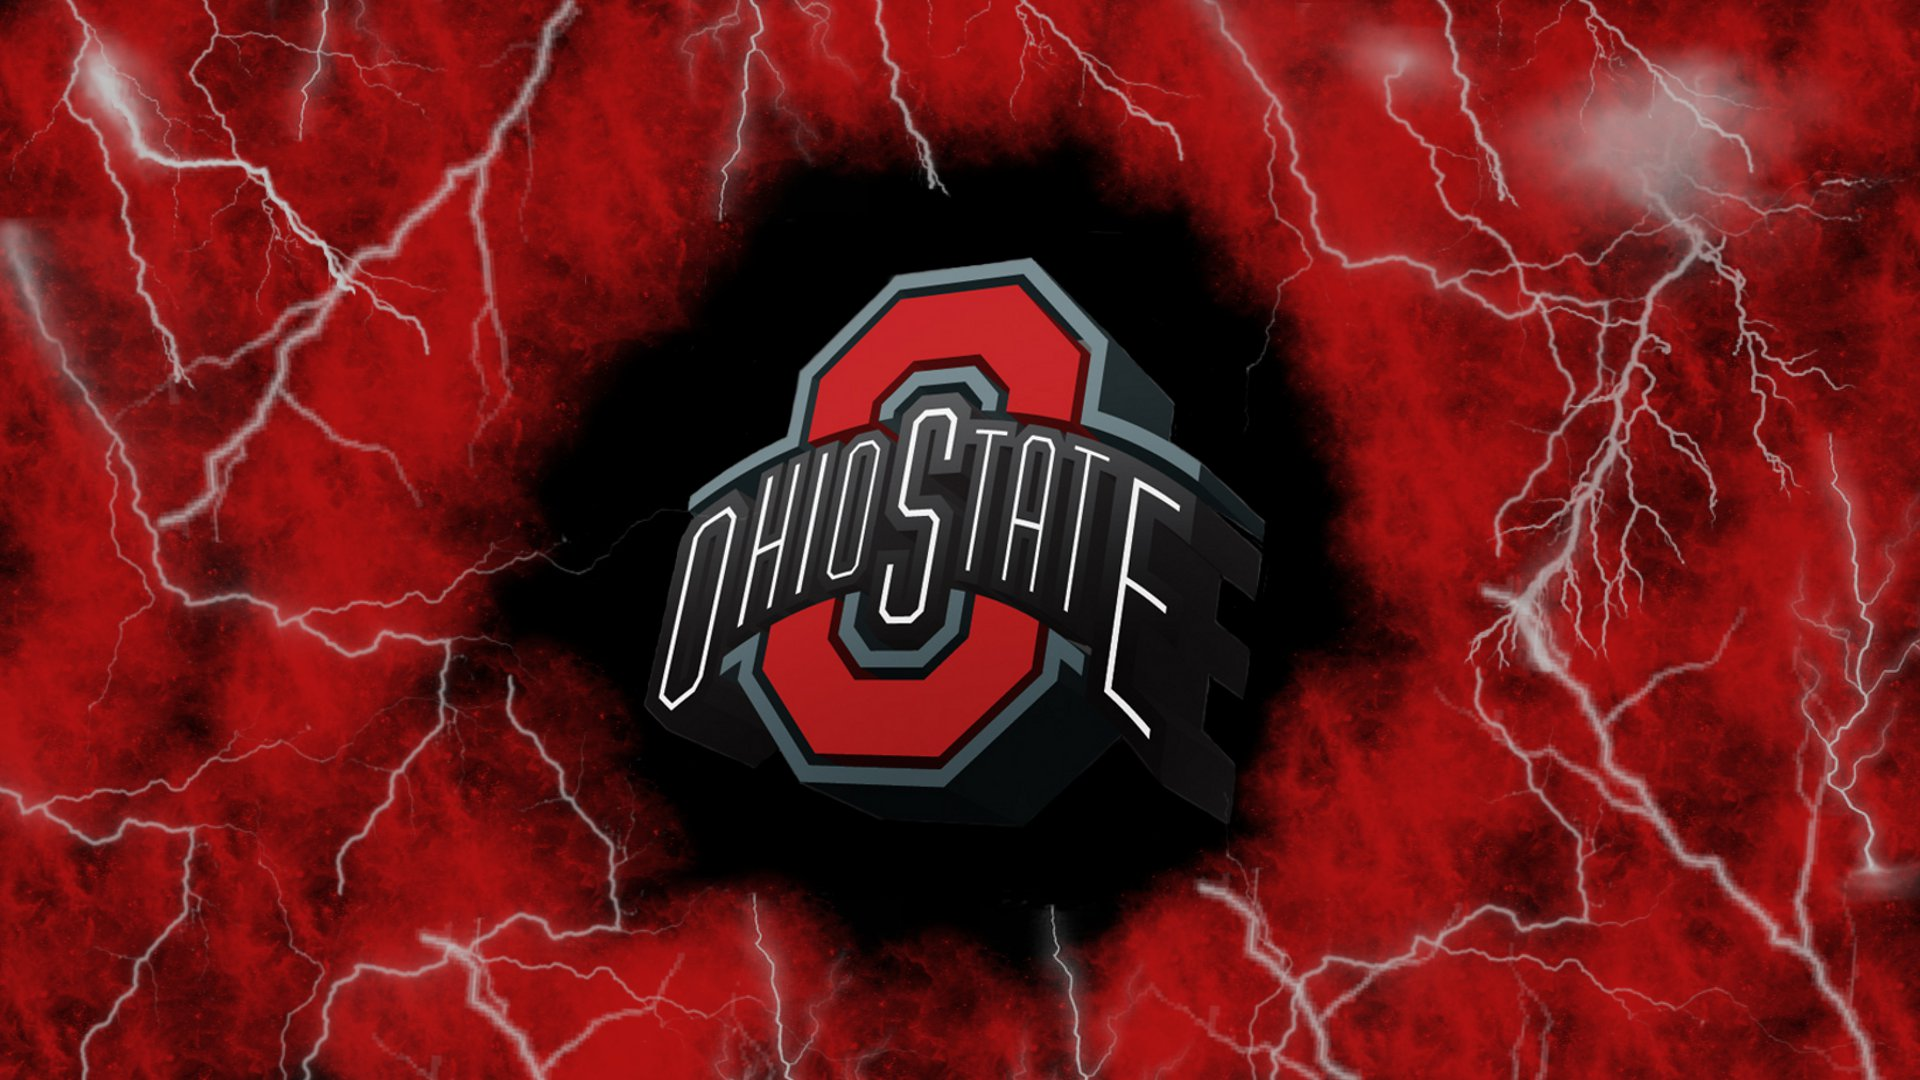 Ohio State Facebook Themes 1920x1080